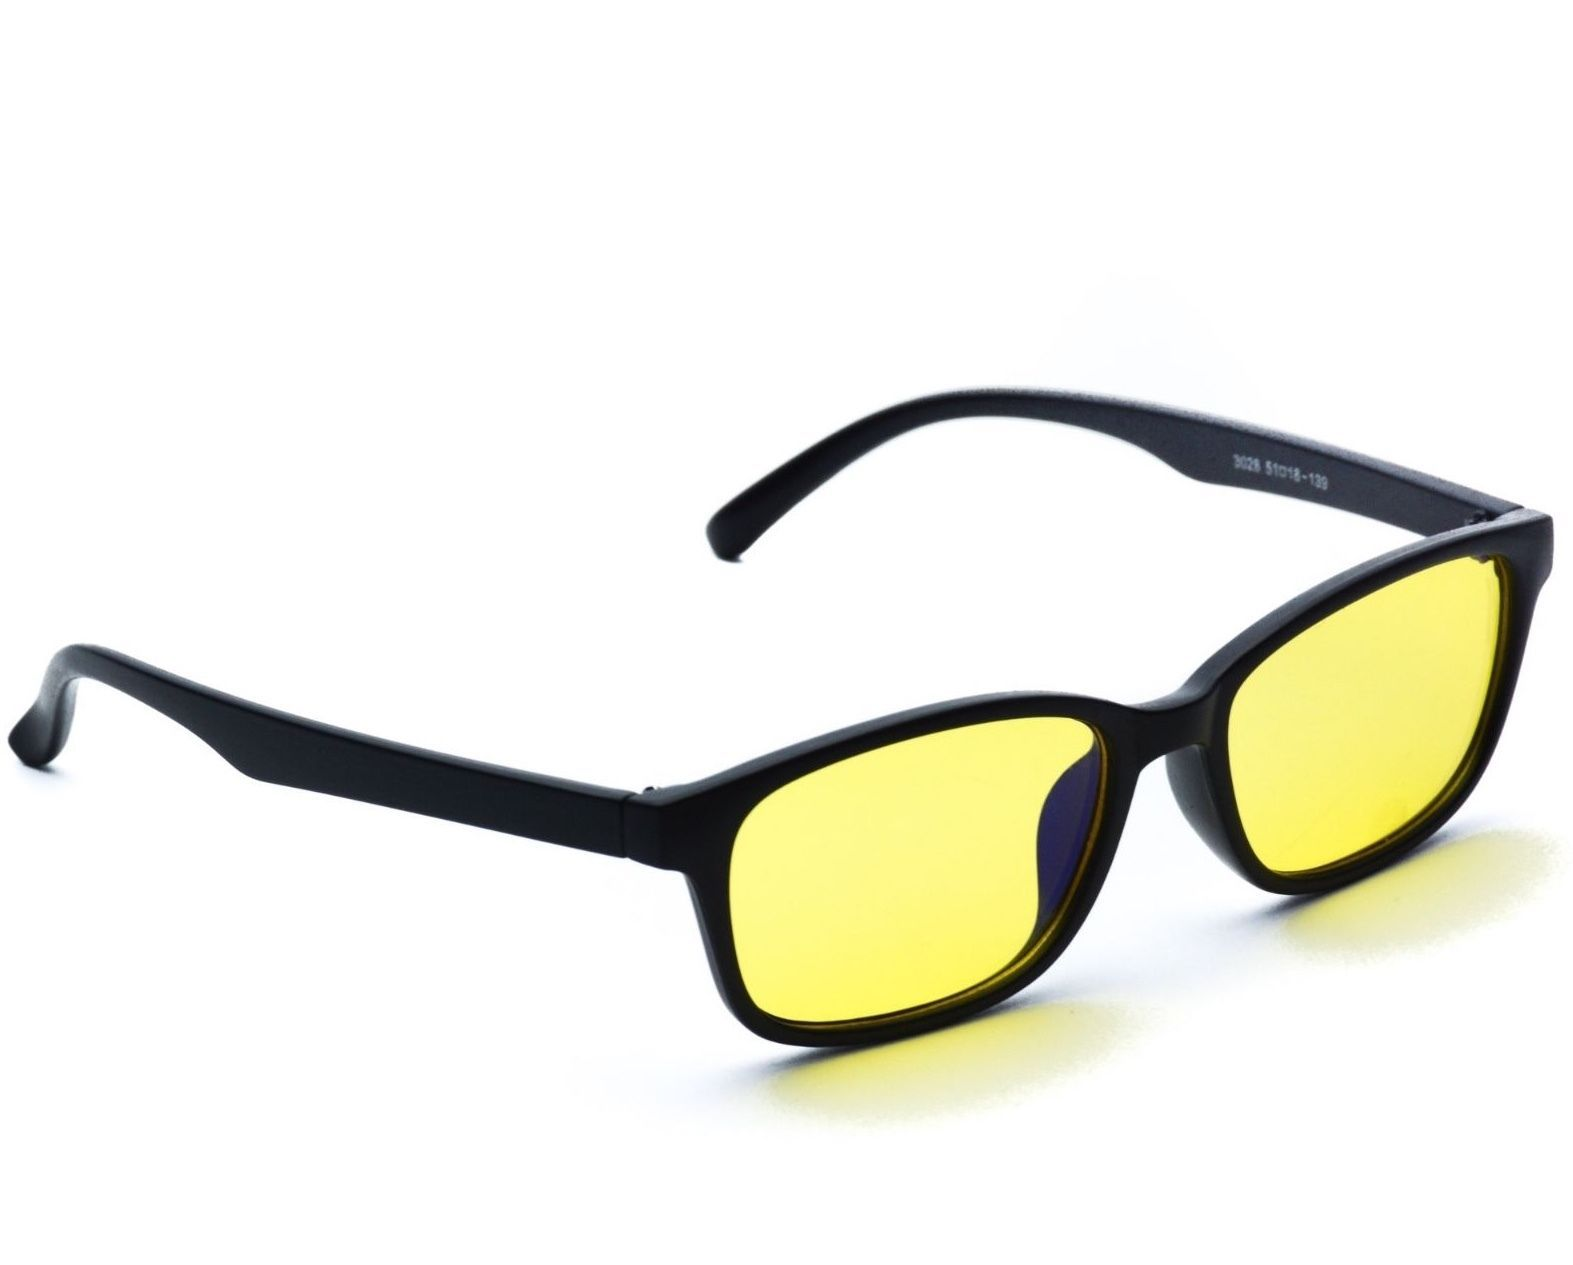 b25c83380b7  10 - Computer Gamer Yellow Lens Protective Screen Glasses  ebay  Home    Garden